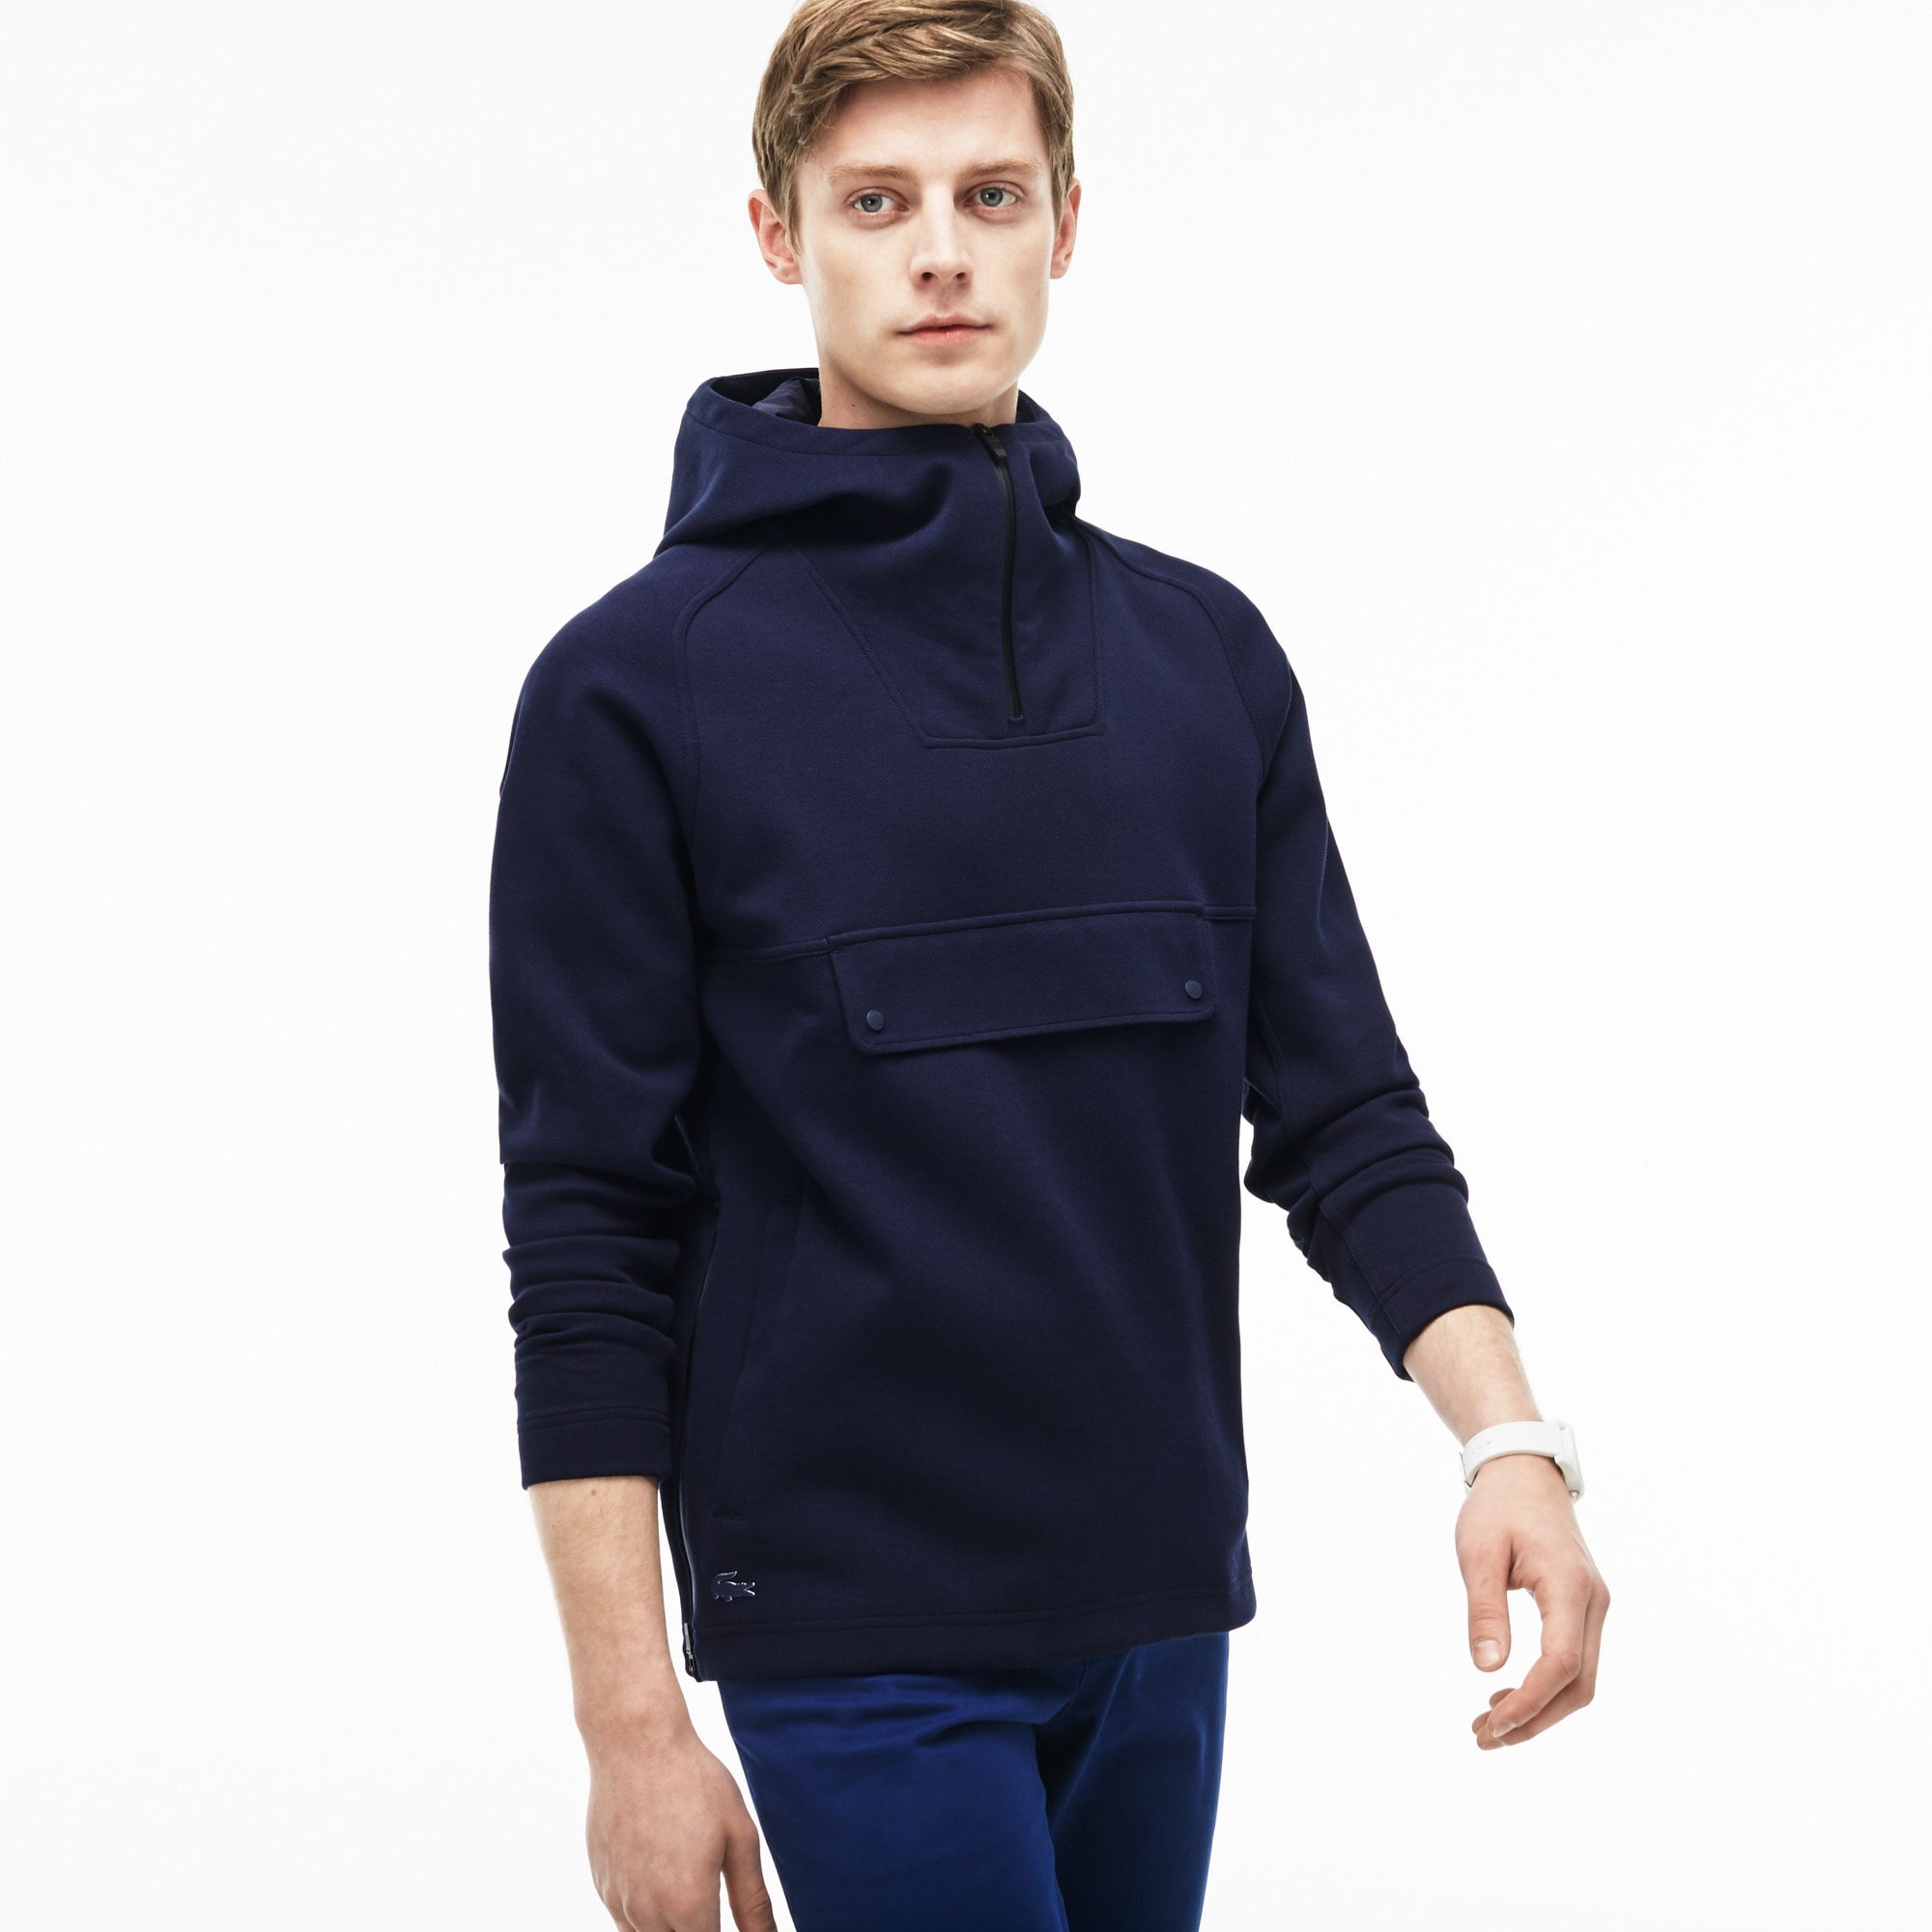 Men's Hooded Zip Neck Wide Pockets Sweatshirt